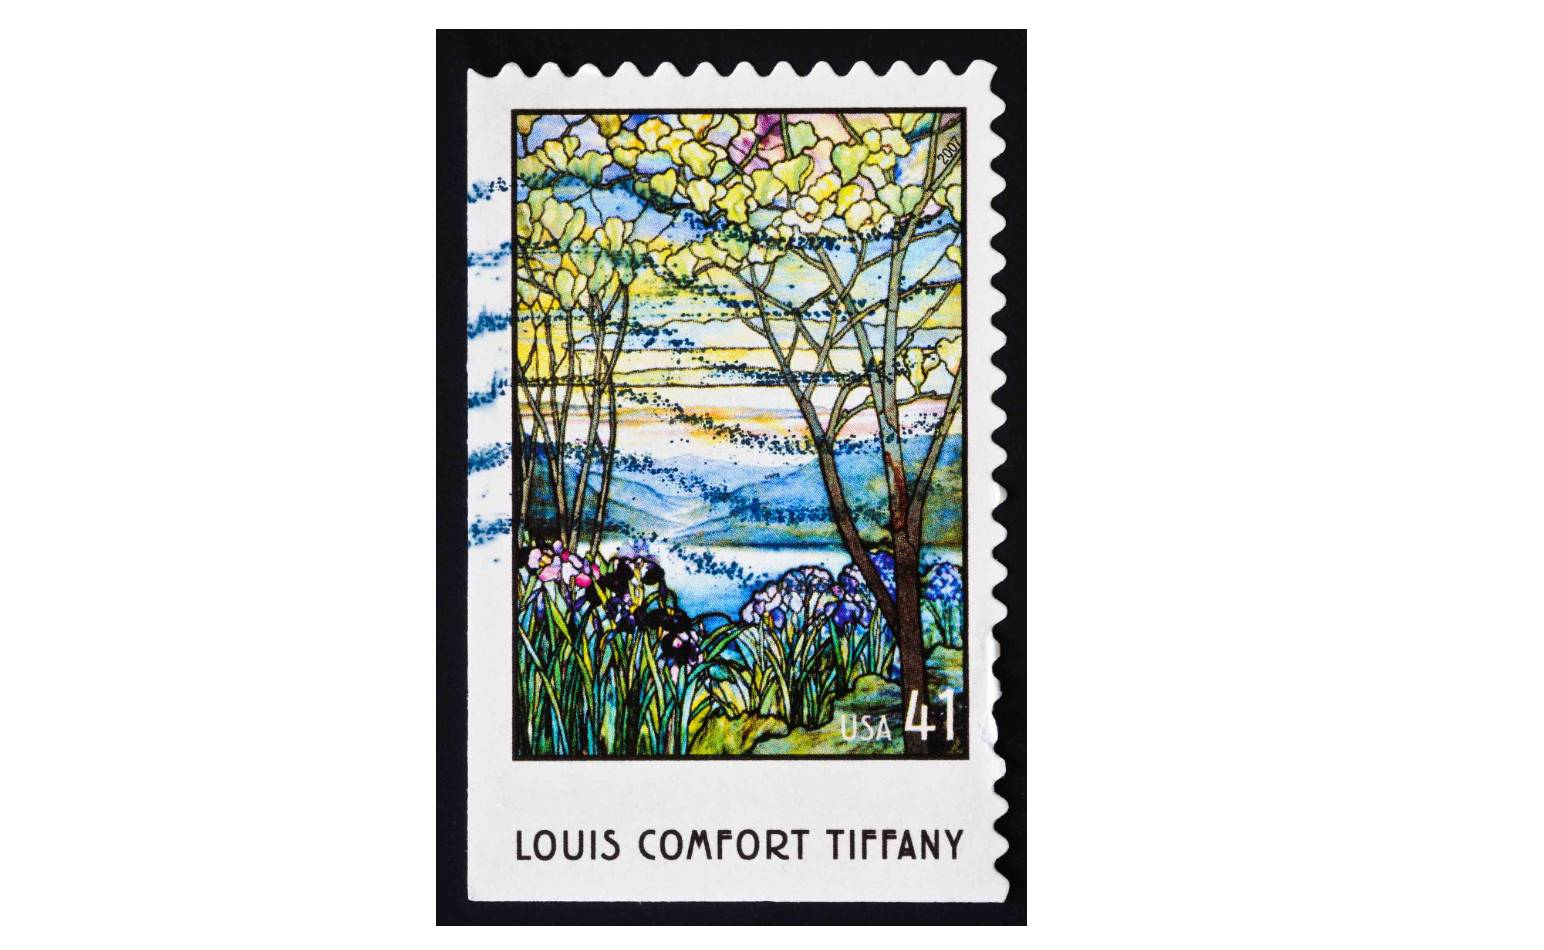 Louis Comfort Tiffany Stamp